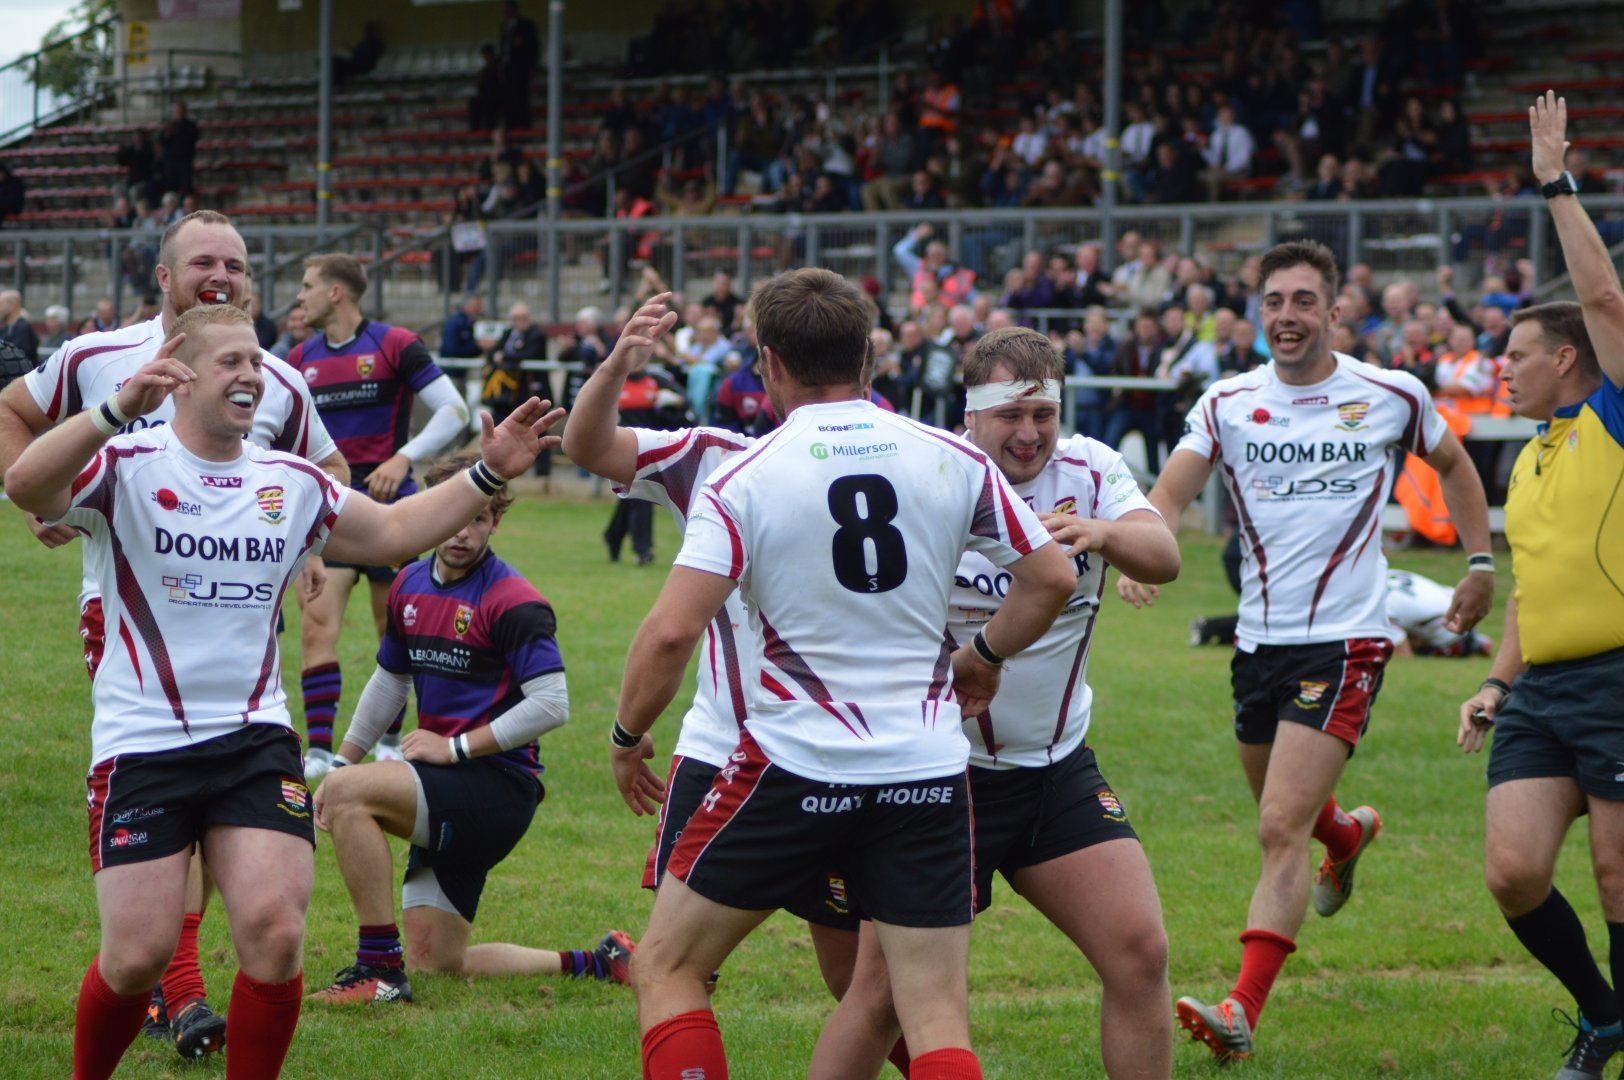 Camborne picked up an important bonus point as they narrowly beat Cleve on Saturday